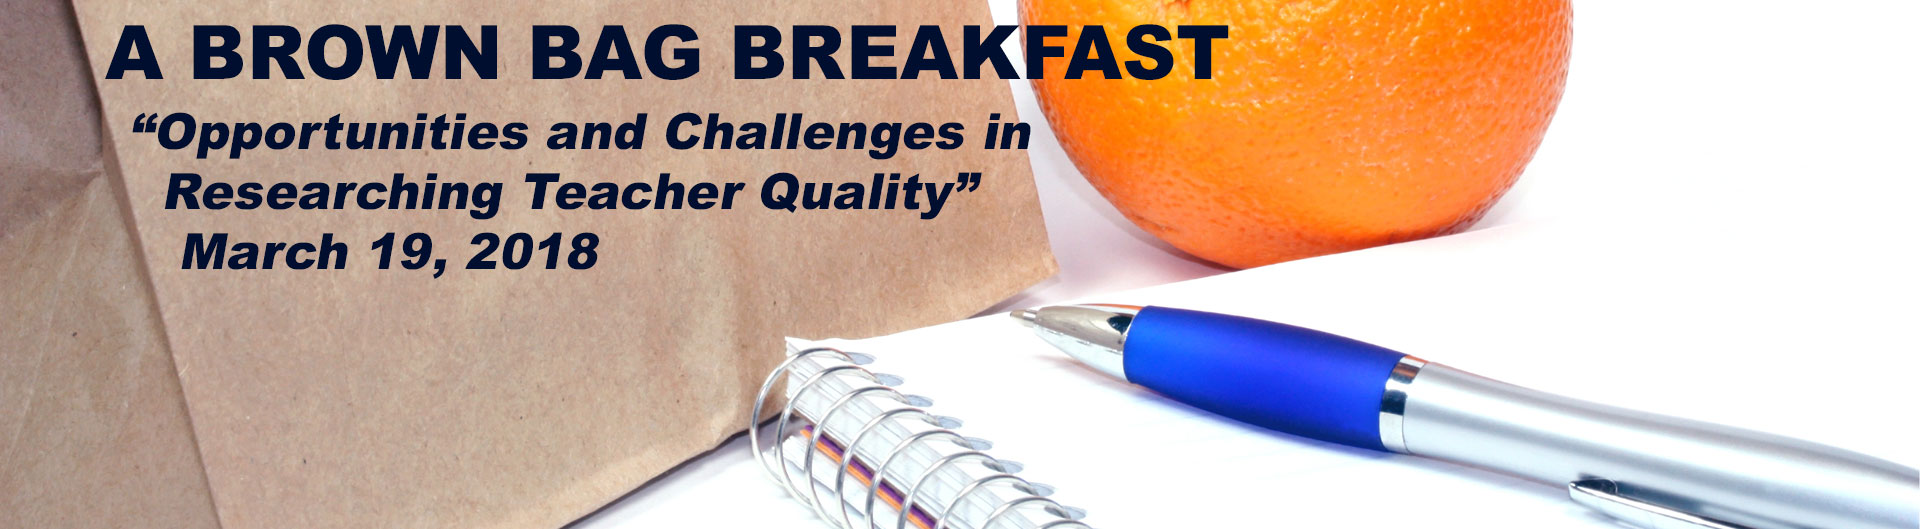 Brown Bag breakfast event, march 2018